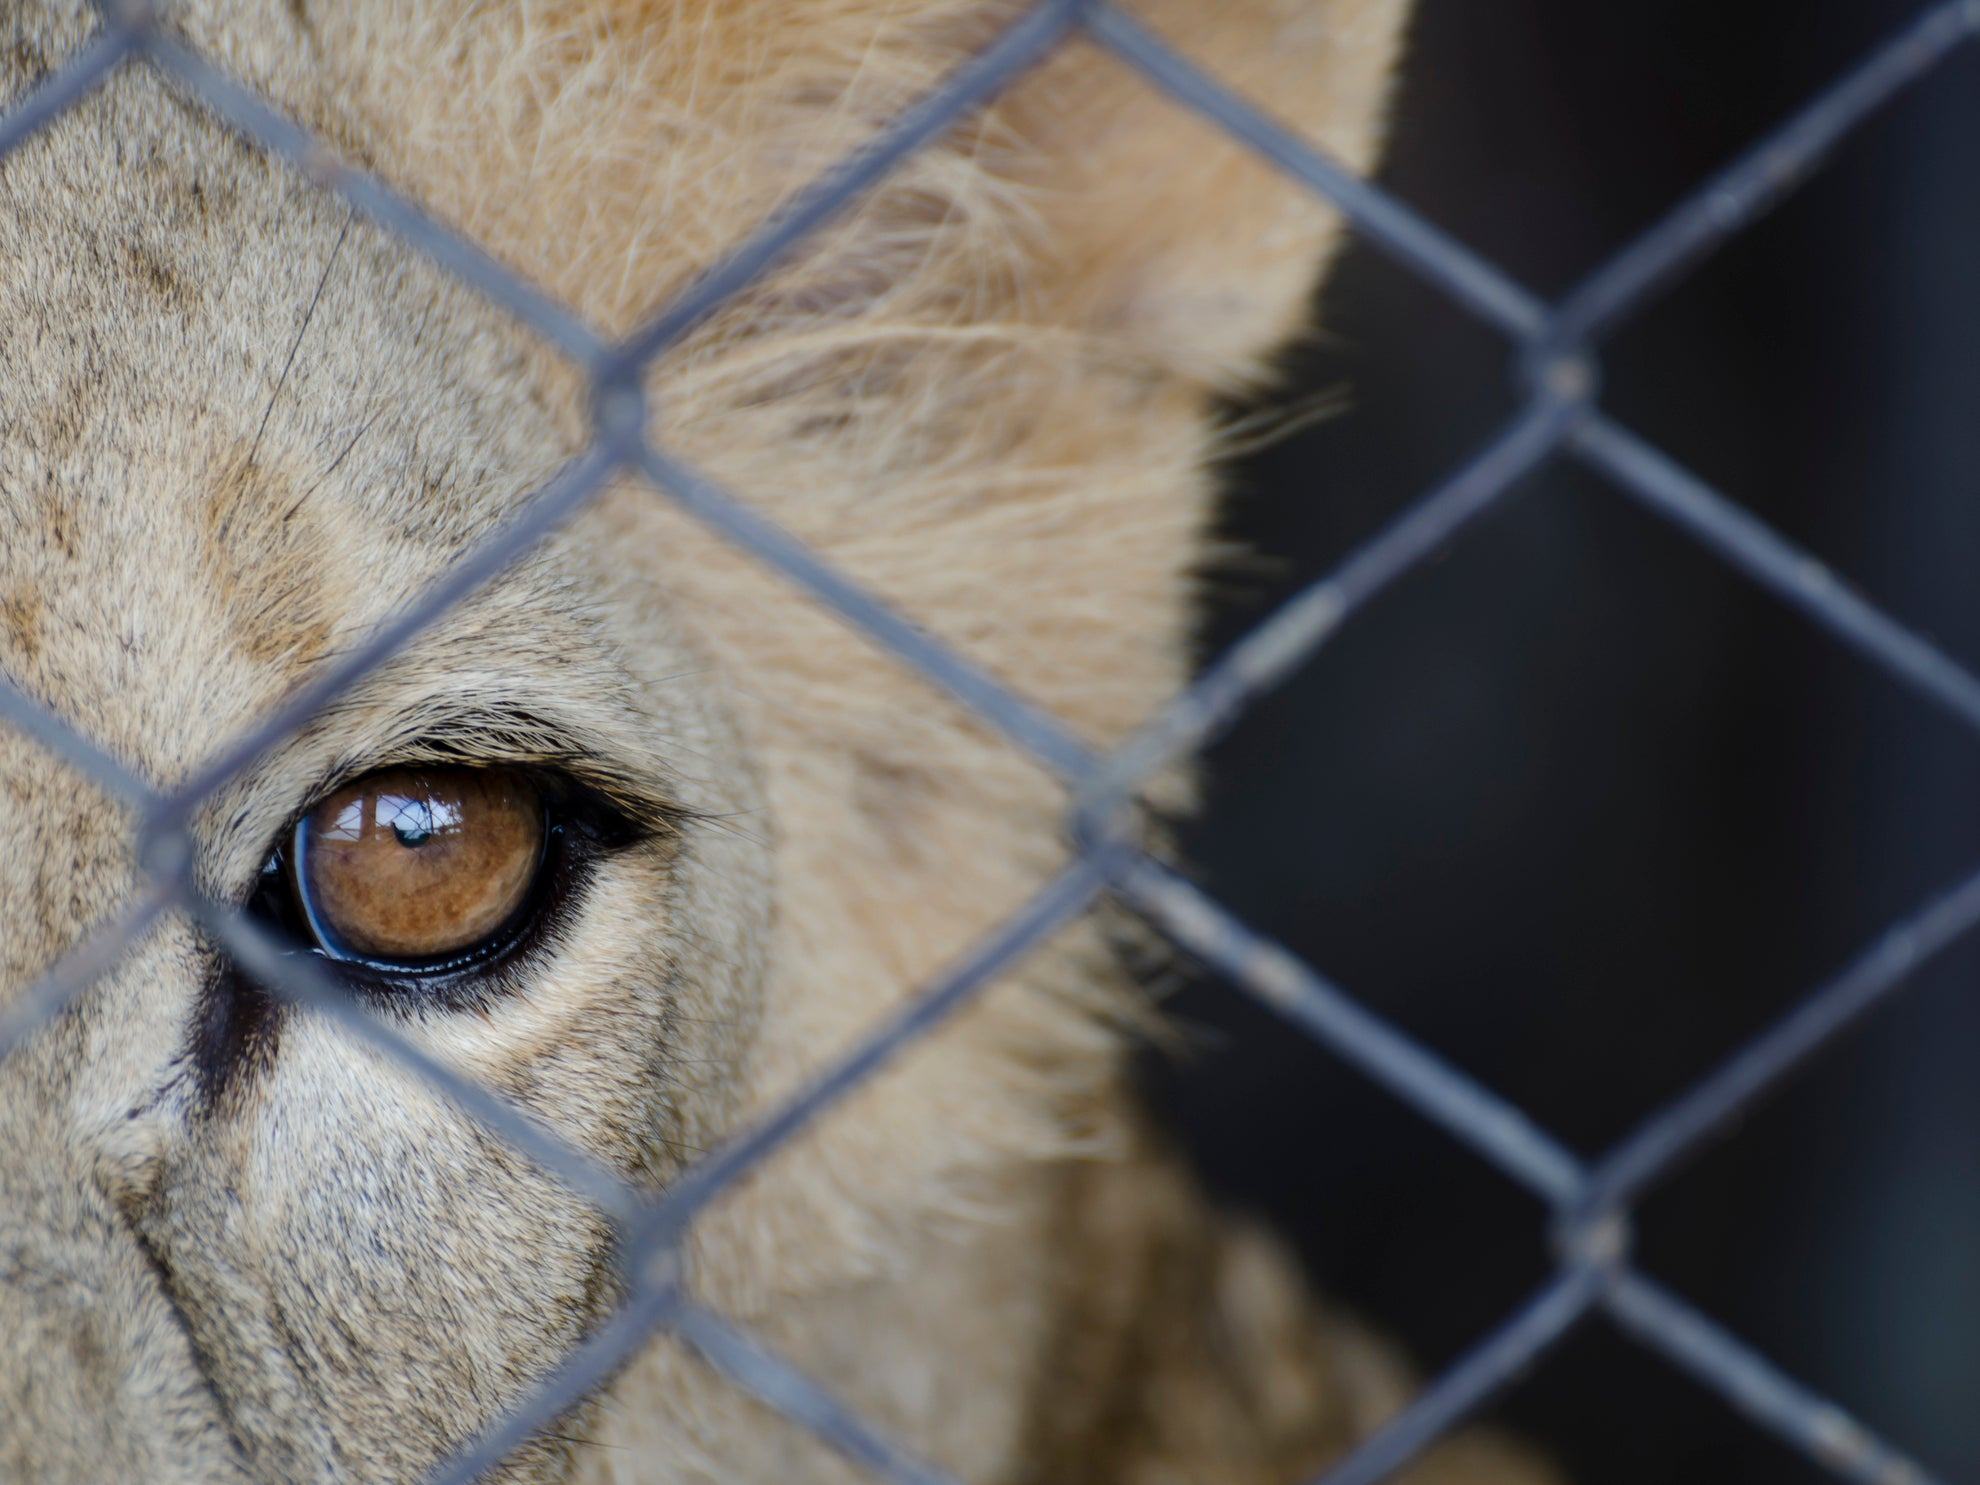 British hunters encouraged by killing of Cecil the lion to shoot more big cats in South Africa's deadly breeding farms